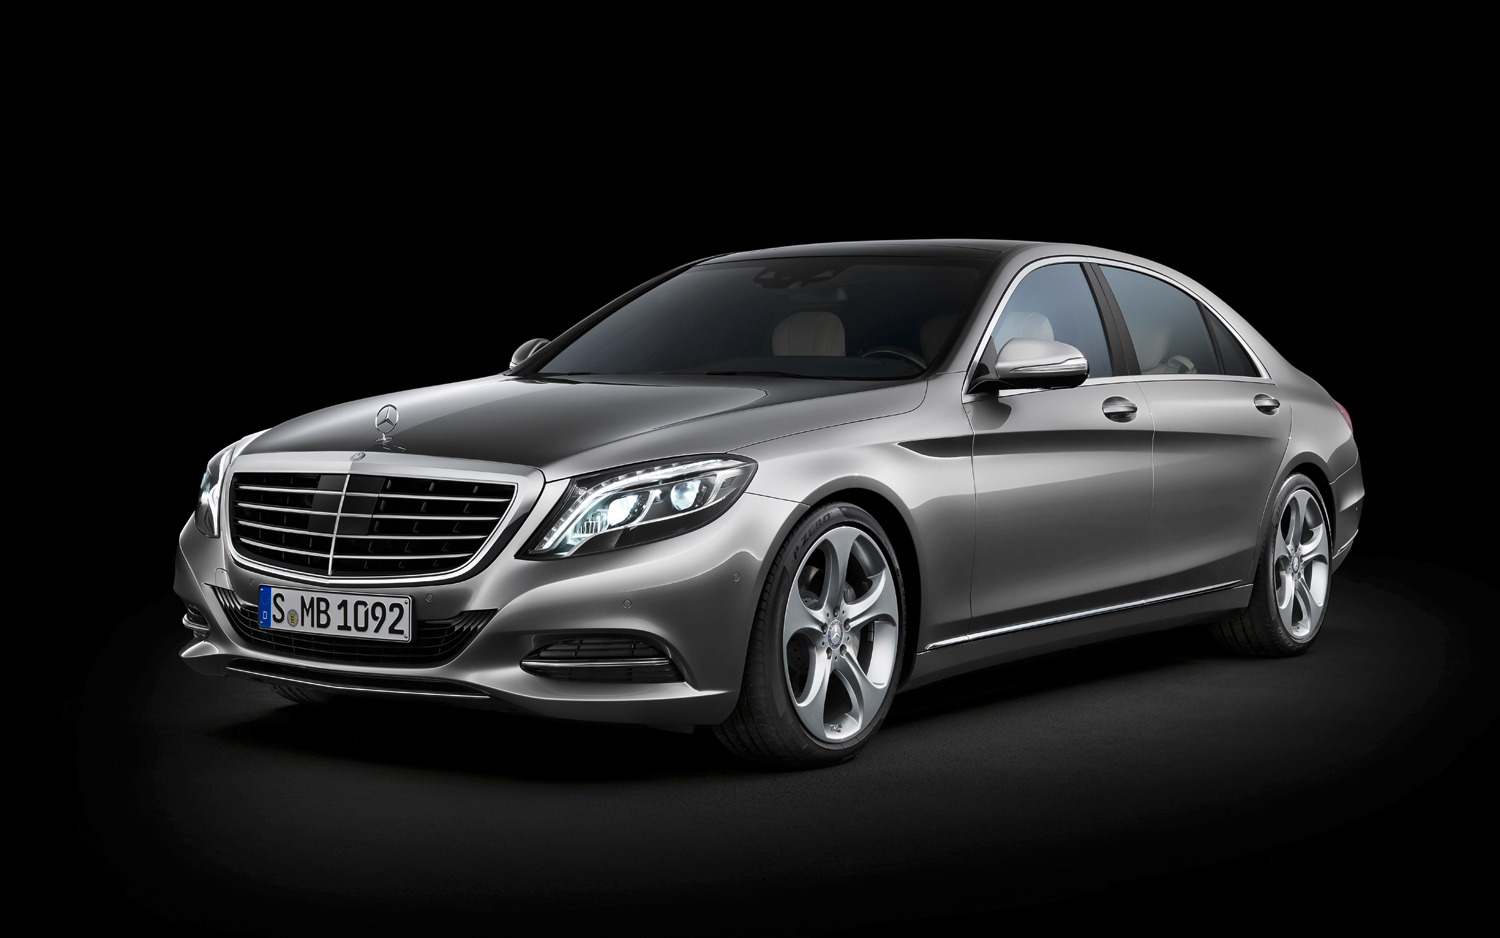 Mercedes benz s class s400 hybrid launching in 2015 for Mercedes benz hybrids